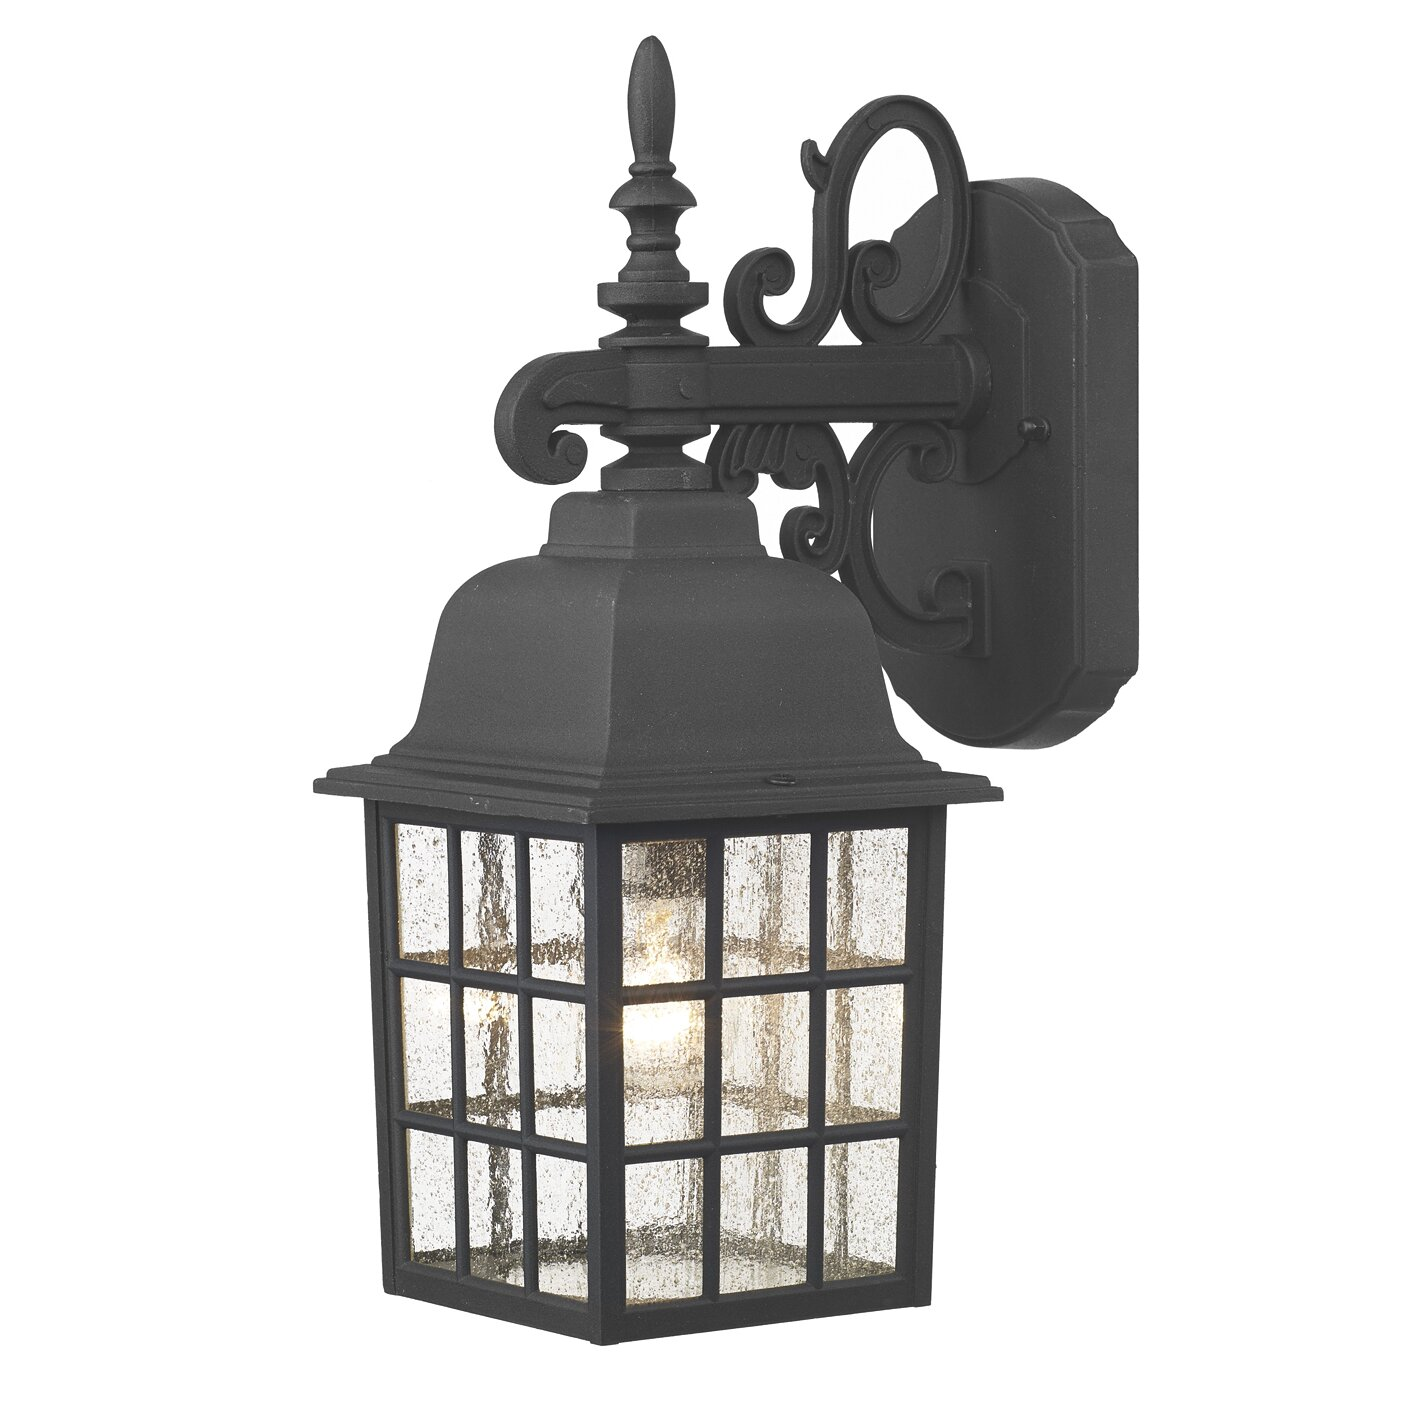 Dar Lighting Norfolk 1 Light Outdoor Wall Lantern & Reviews Wayfair UK